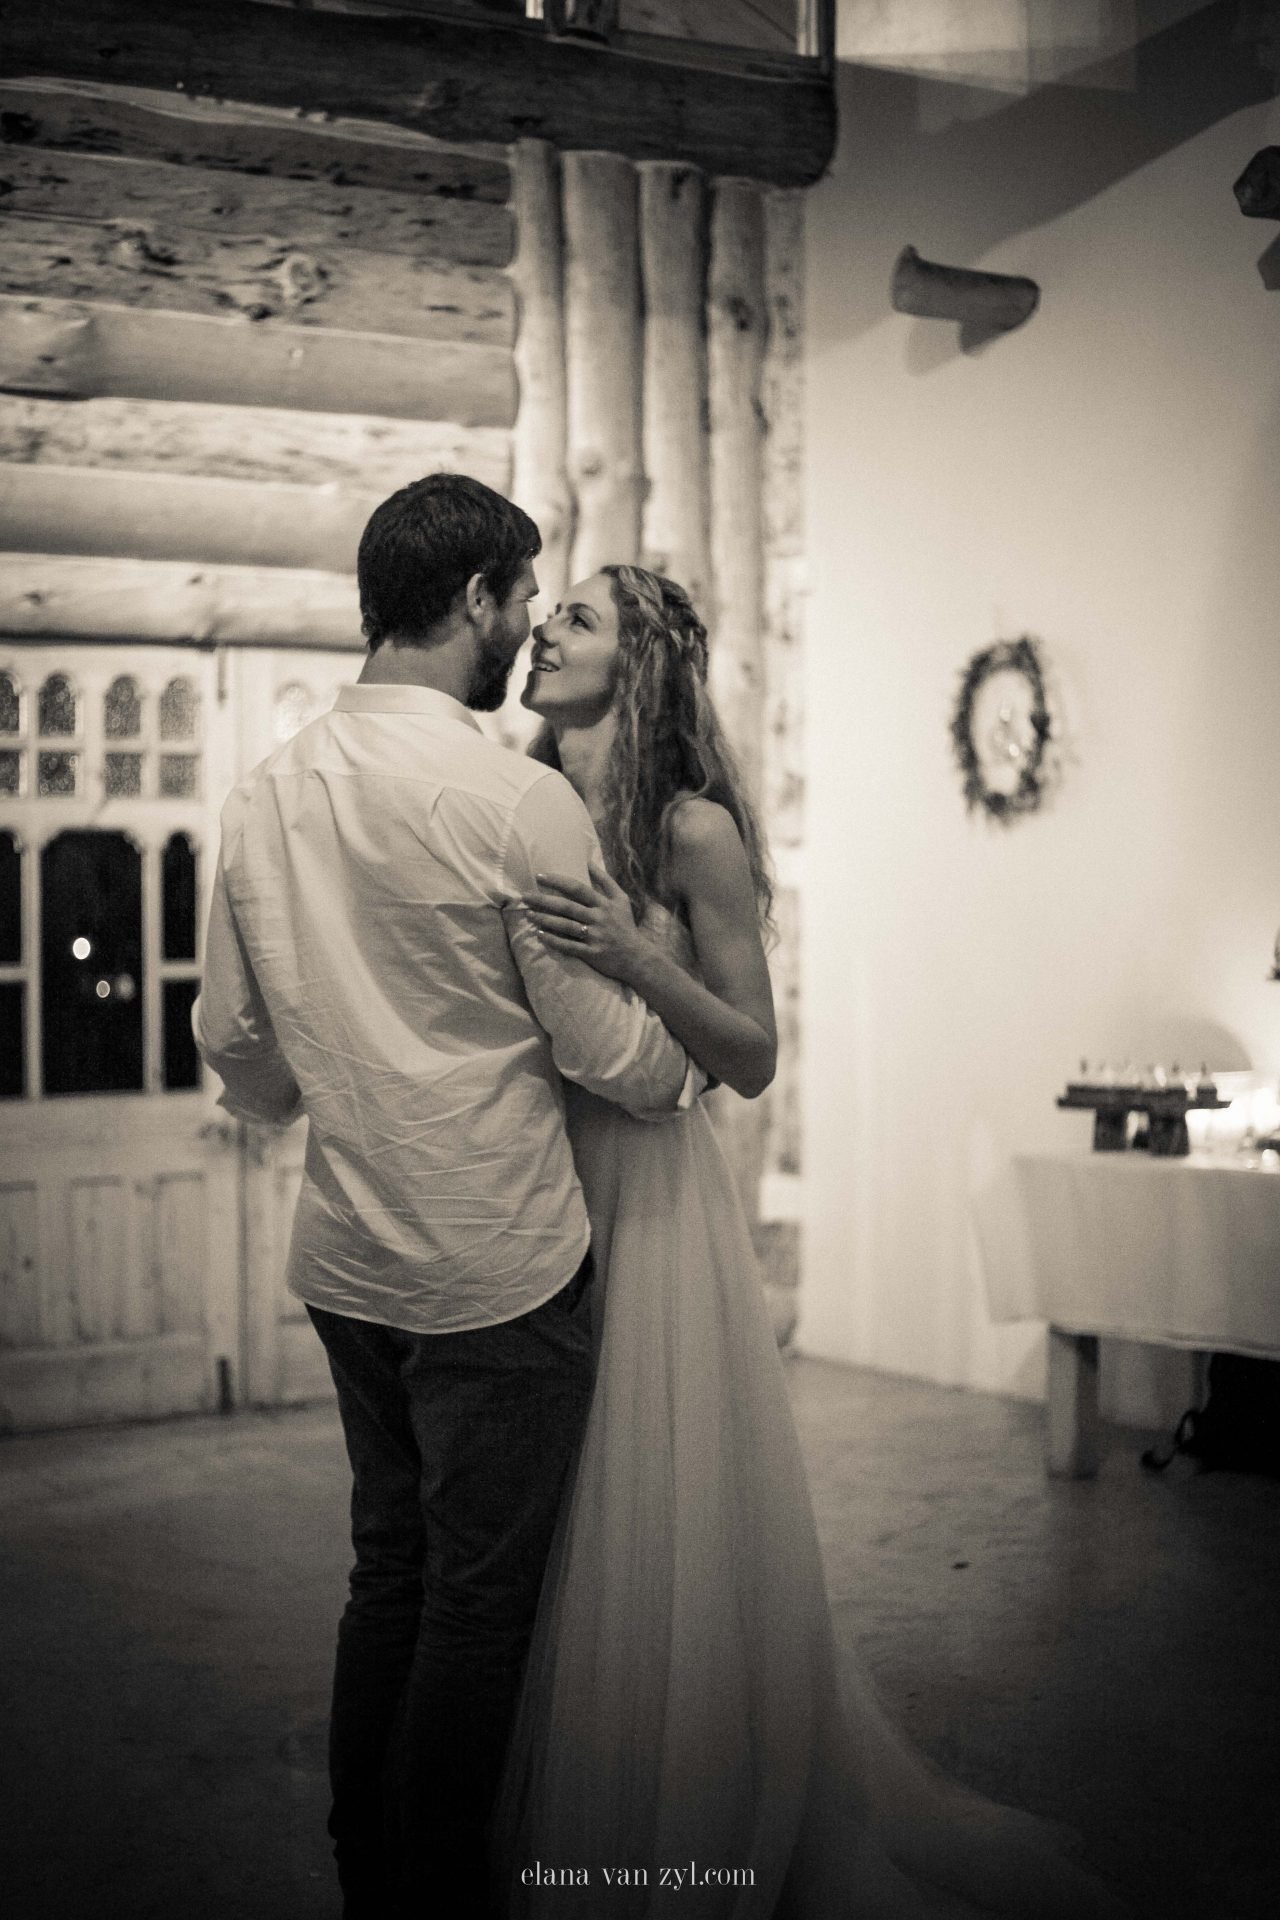 lorien-david-elana-van-zyl-swellendam-overberg-photographer-de-uijlenes-wedding-8563